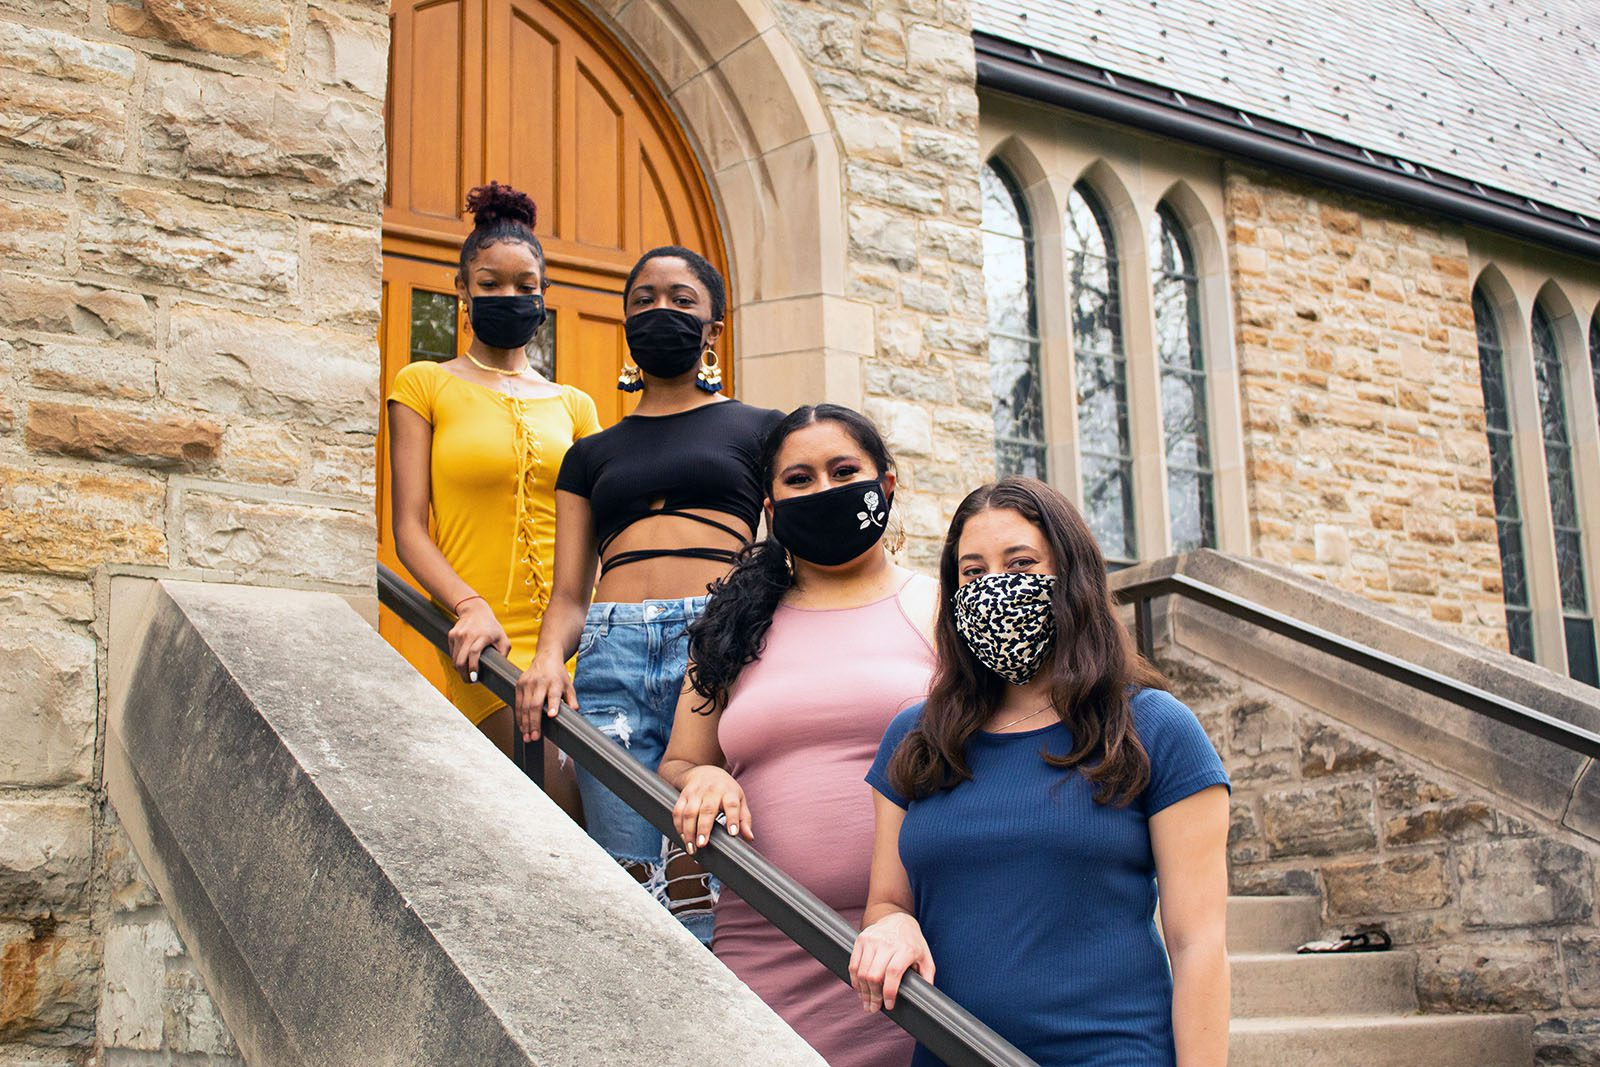 Portrait of (from left to right) Tija Atkins, Sophia Evans, Joanna Perez, and Allyvia Garza on a stone staircase with a stone building and wooden door in the background.